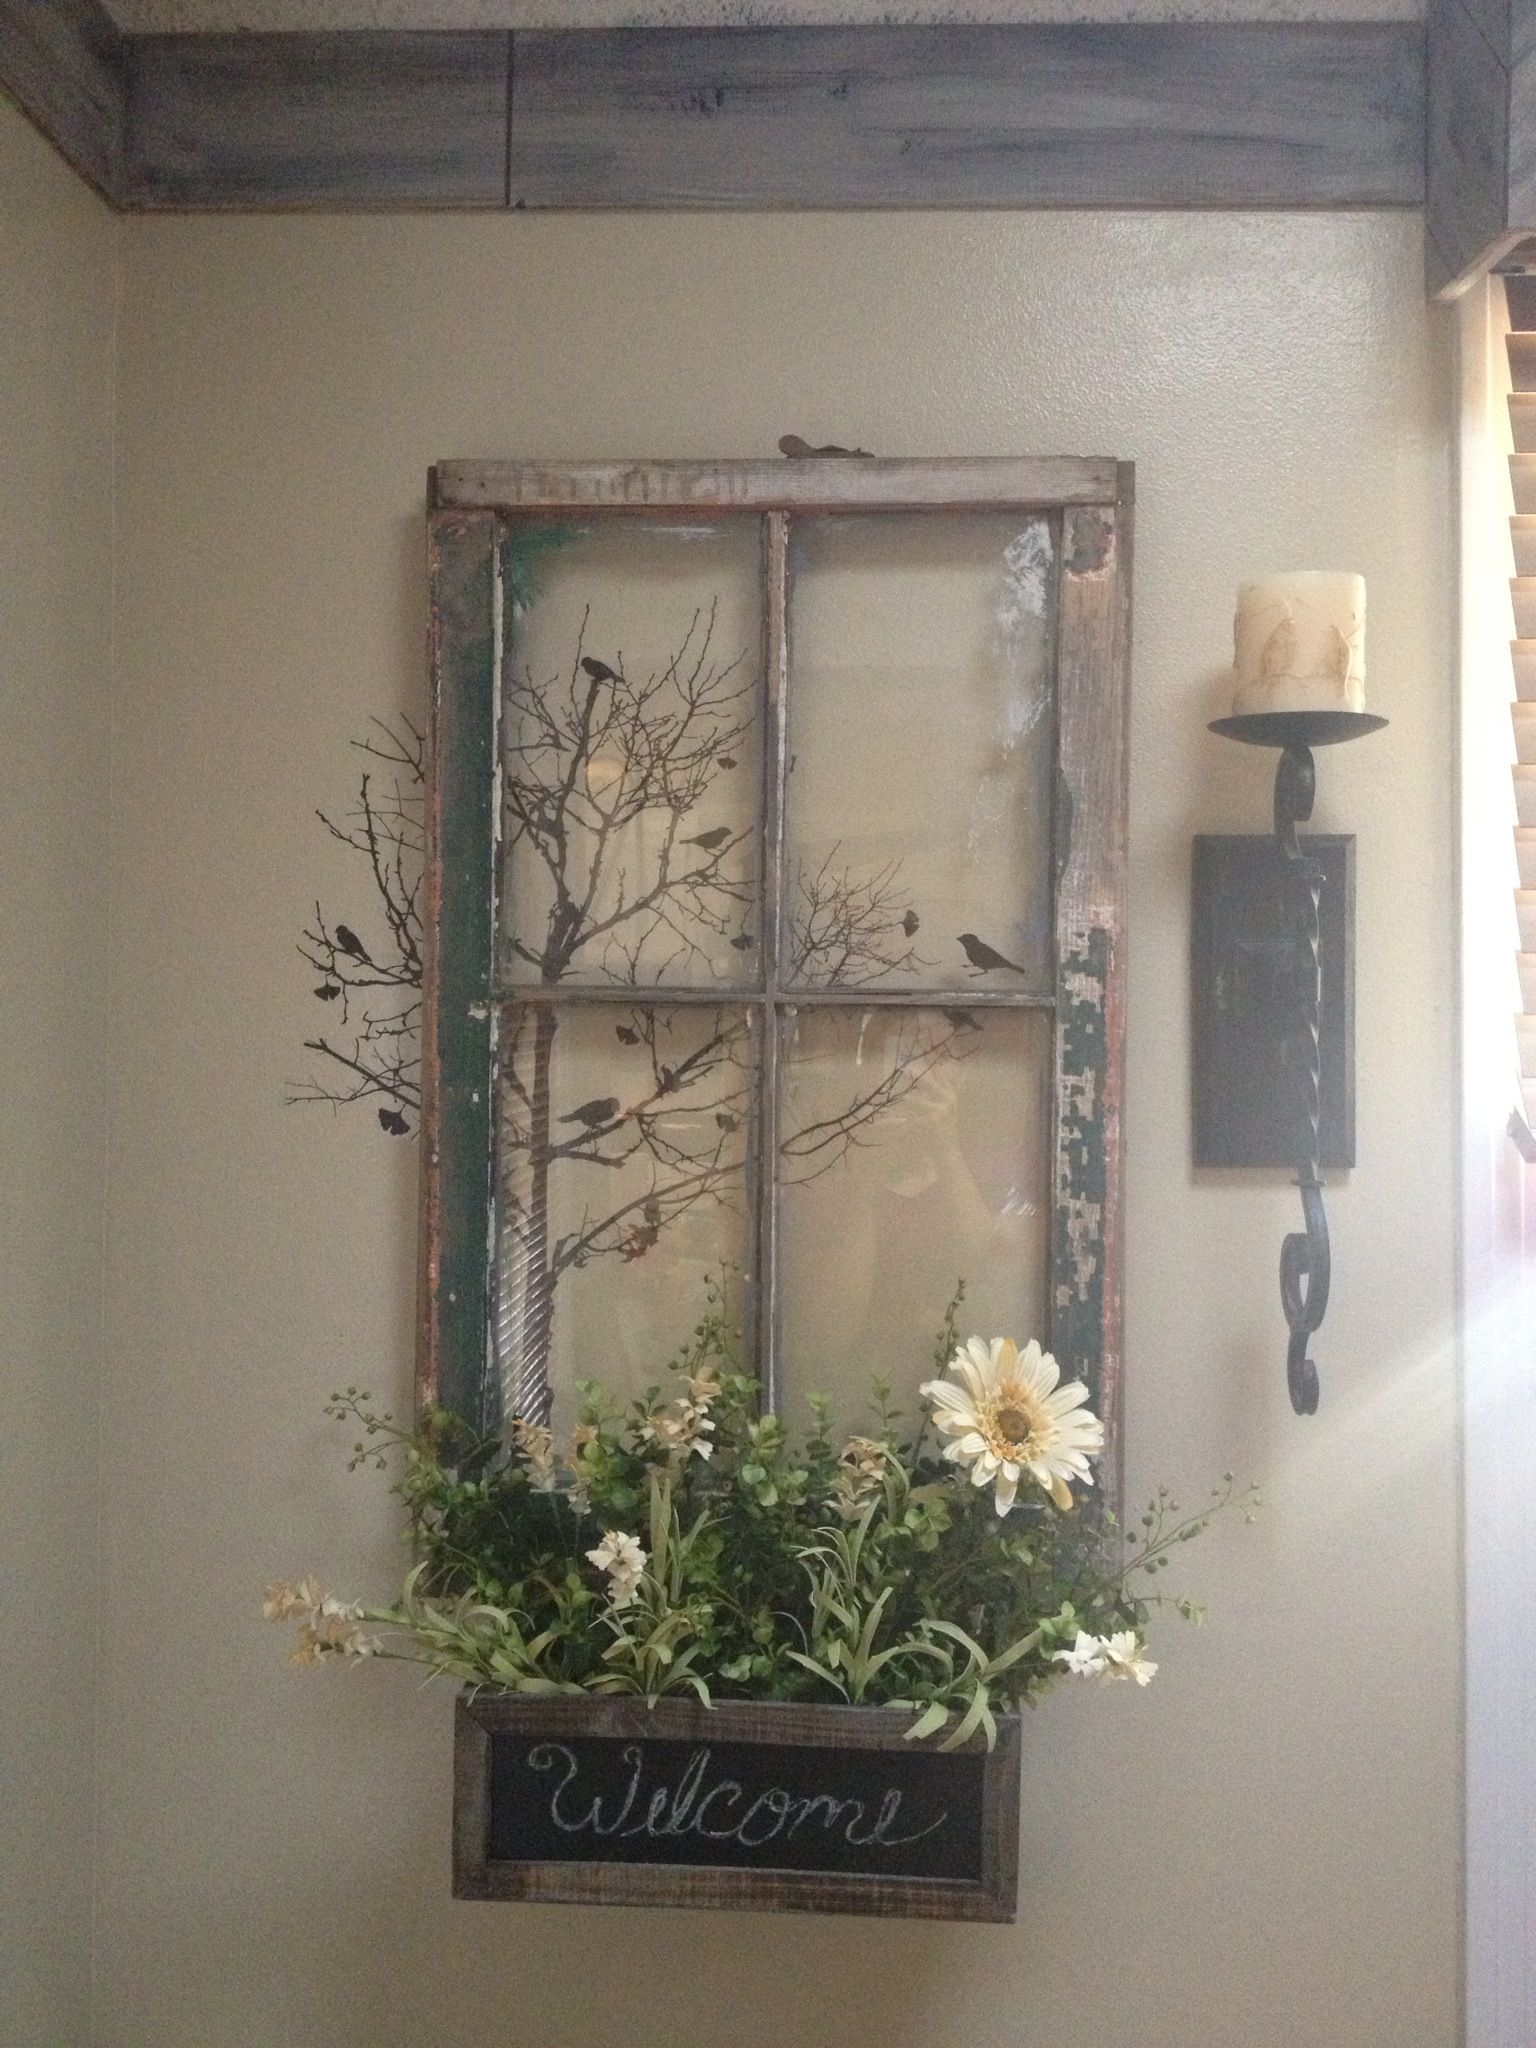 Window pane ideas  my vision of an old window repurposed except with a mirror instead